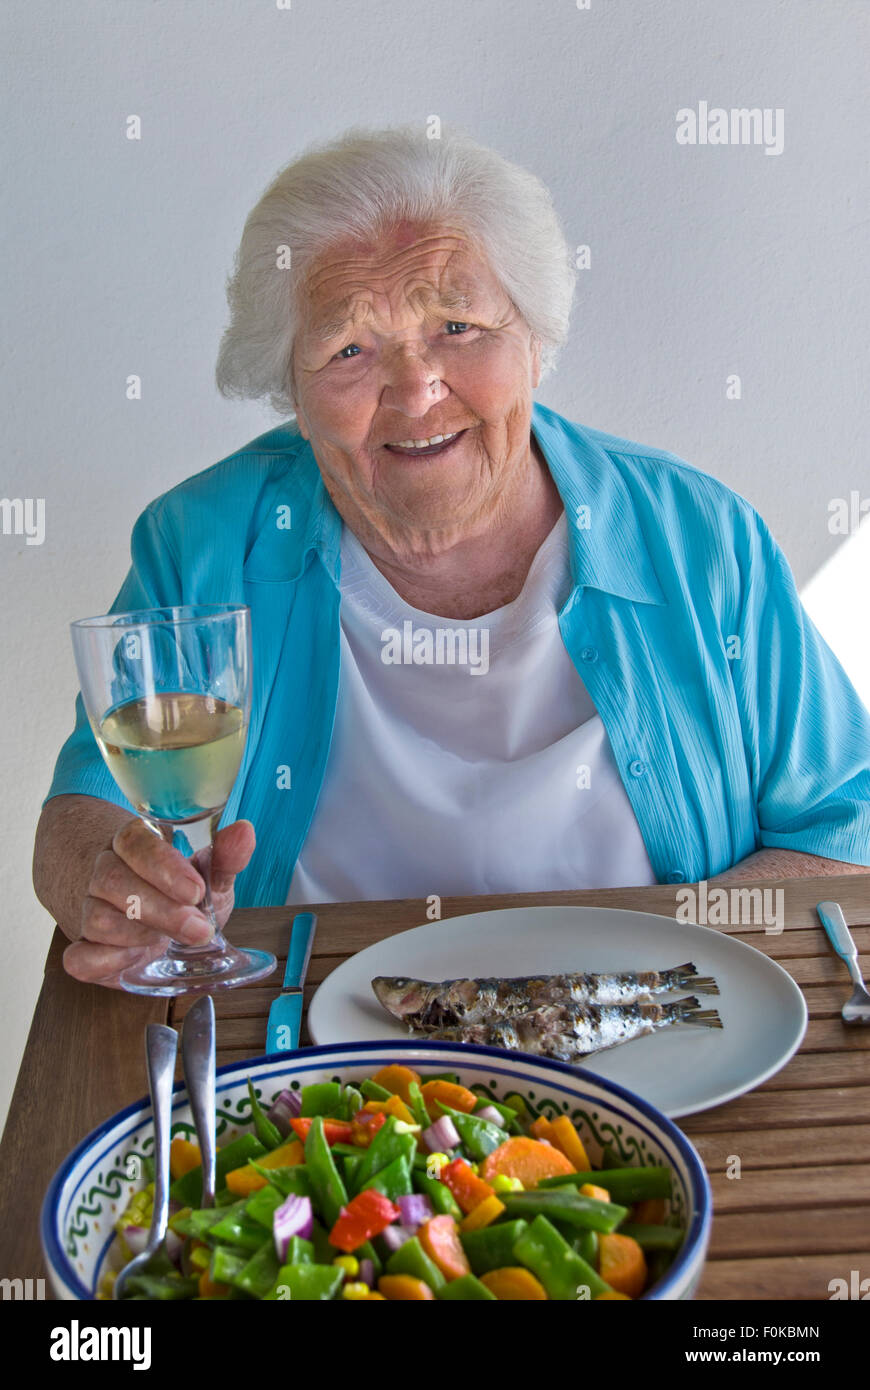 Happy elderly lady 90s on holiday enjoying healthy alfresco meal of fresh grilled fish, mixed bean salad and glass - Stock Image